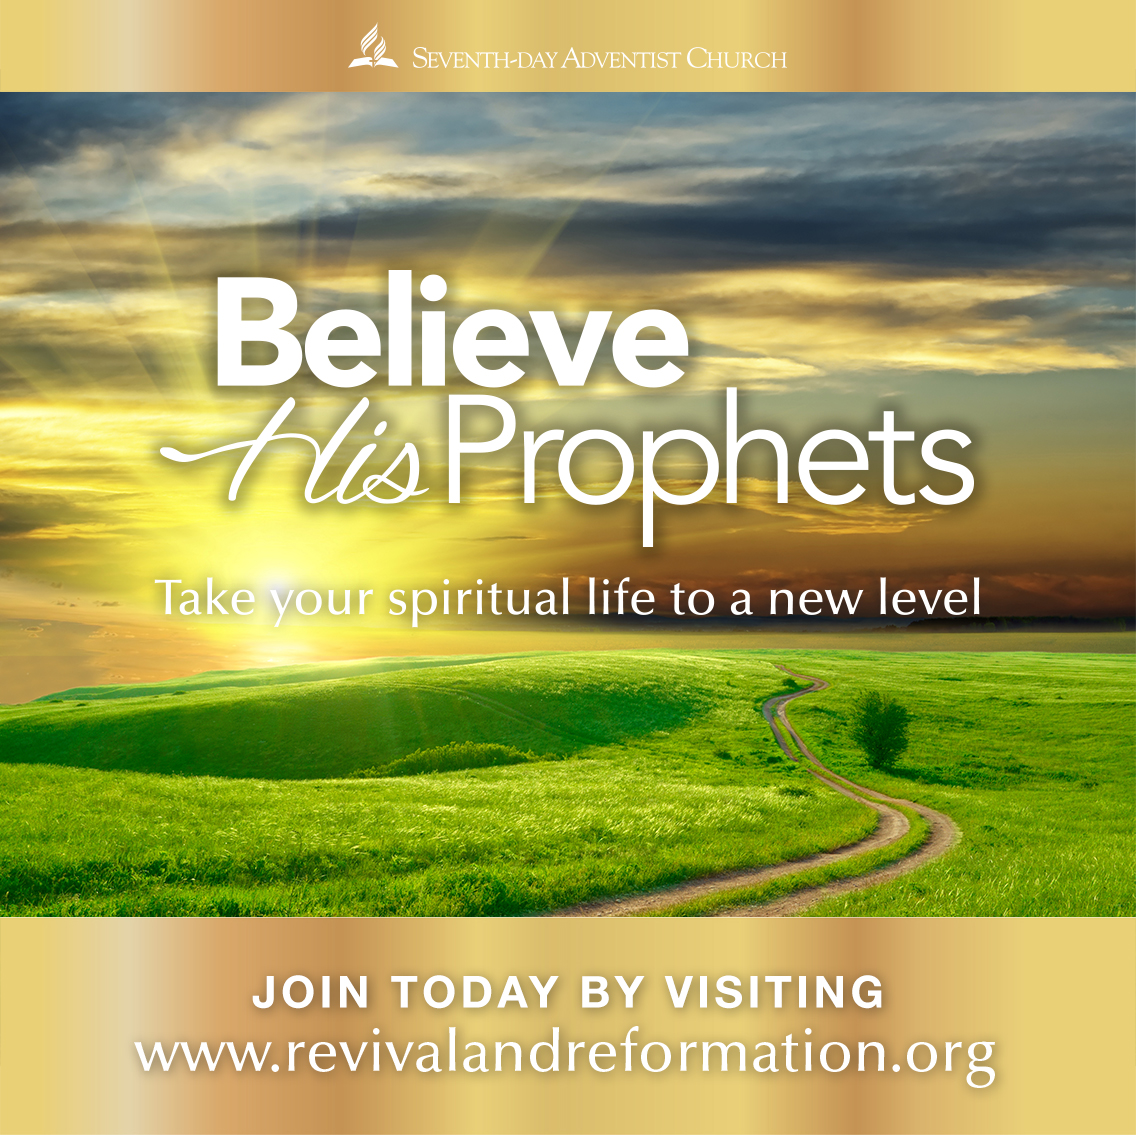 Believe His Prophets - Free Adventist Resources